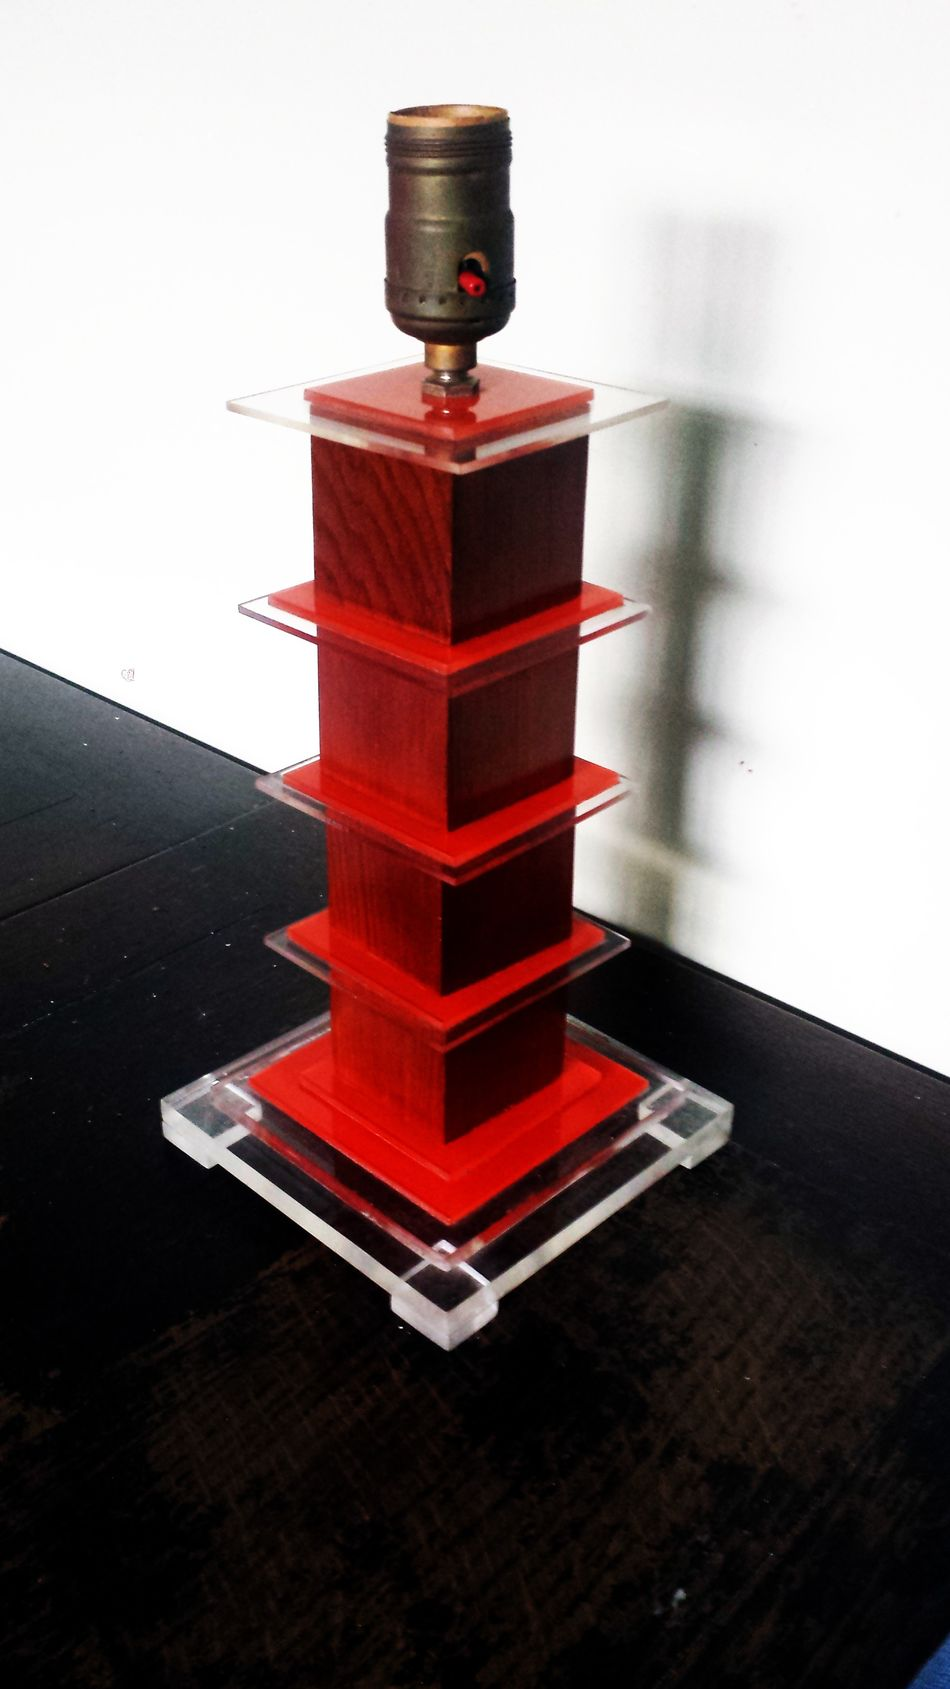 Acrylic Antique Art Deco Close-up Lamp Lucite Modernist No People Red Table Lamp Wood